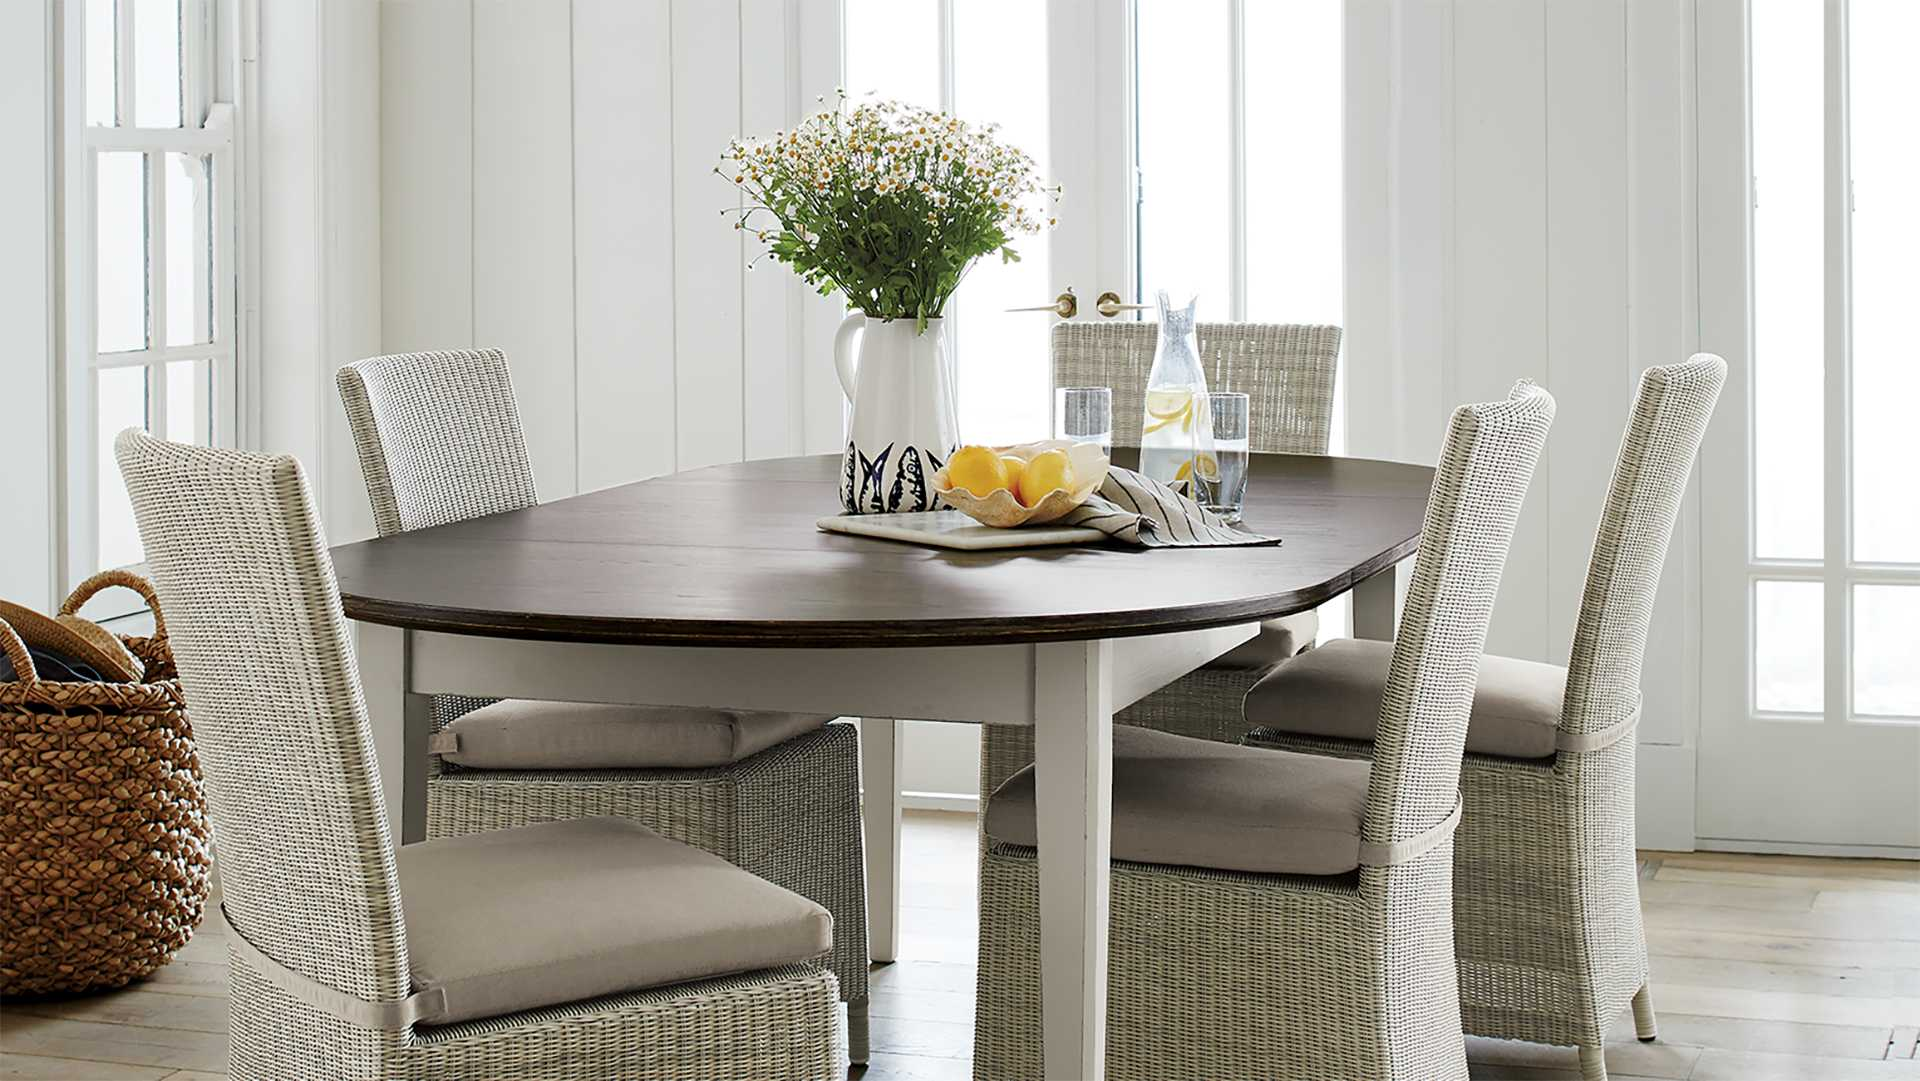 Dining room with Pronzo table and Captiva wicker chairs